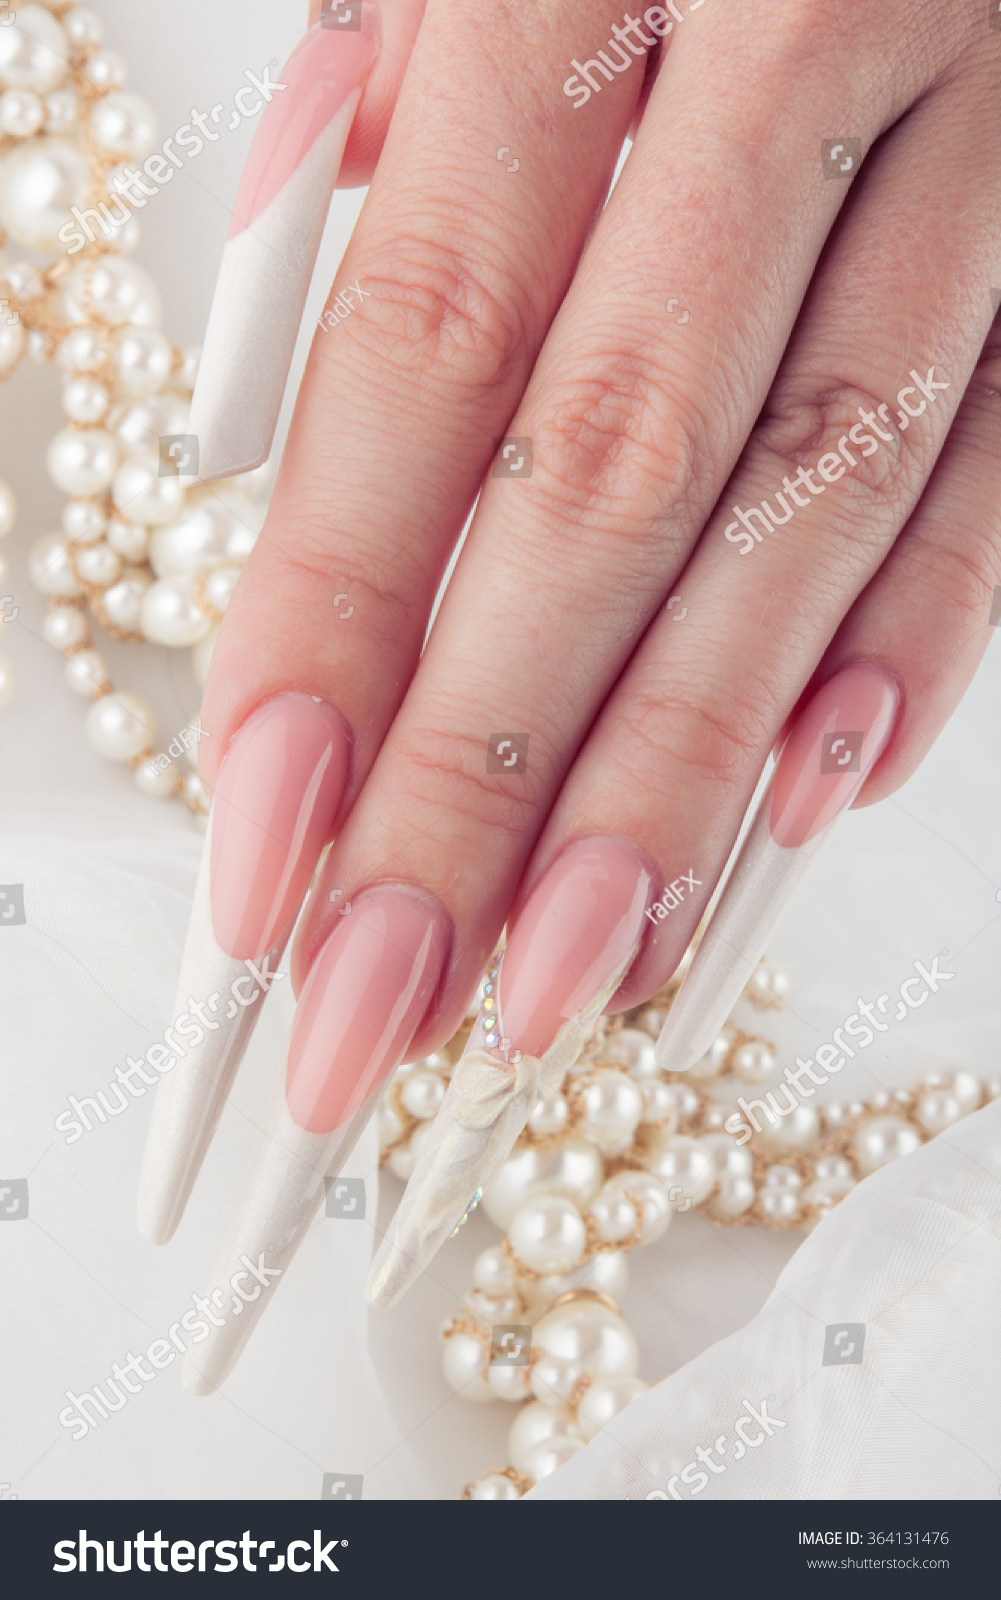 Painted Simple Extreme Long Nails Hands Stock Photo 364131476 ...